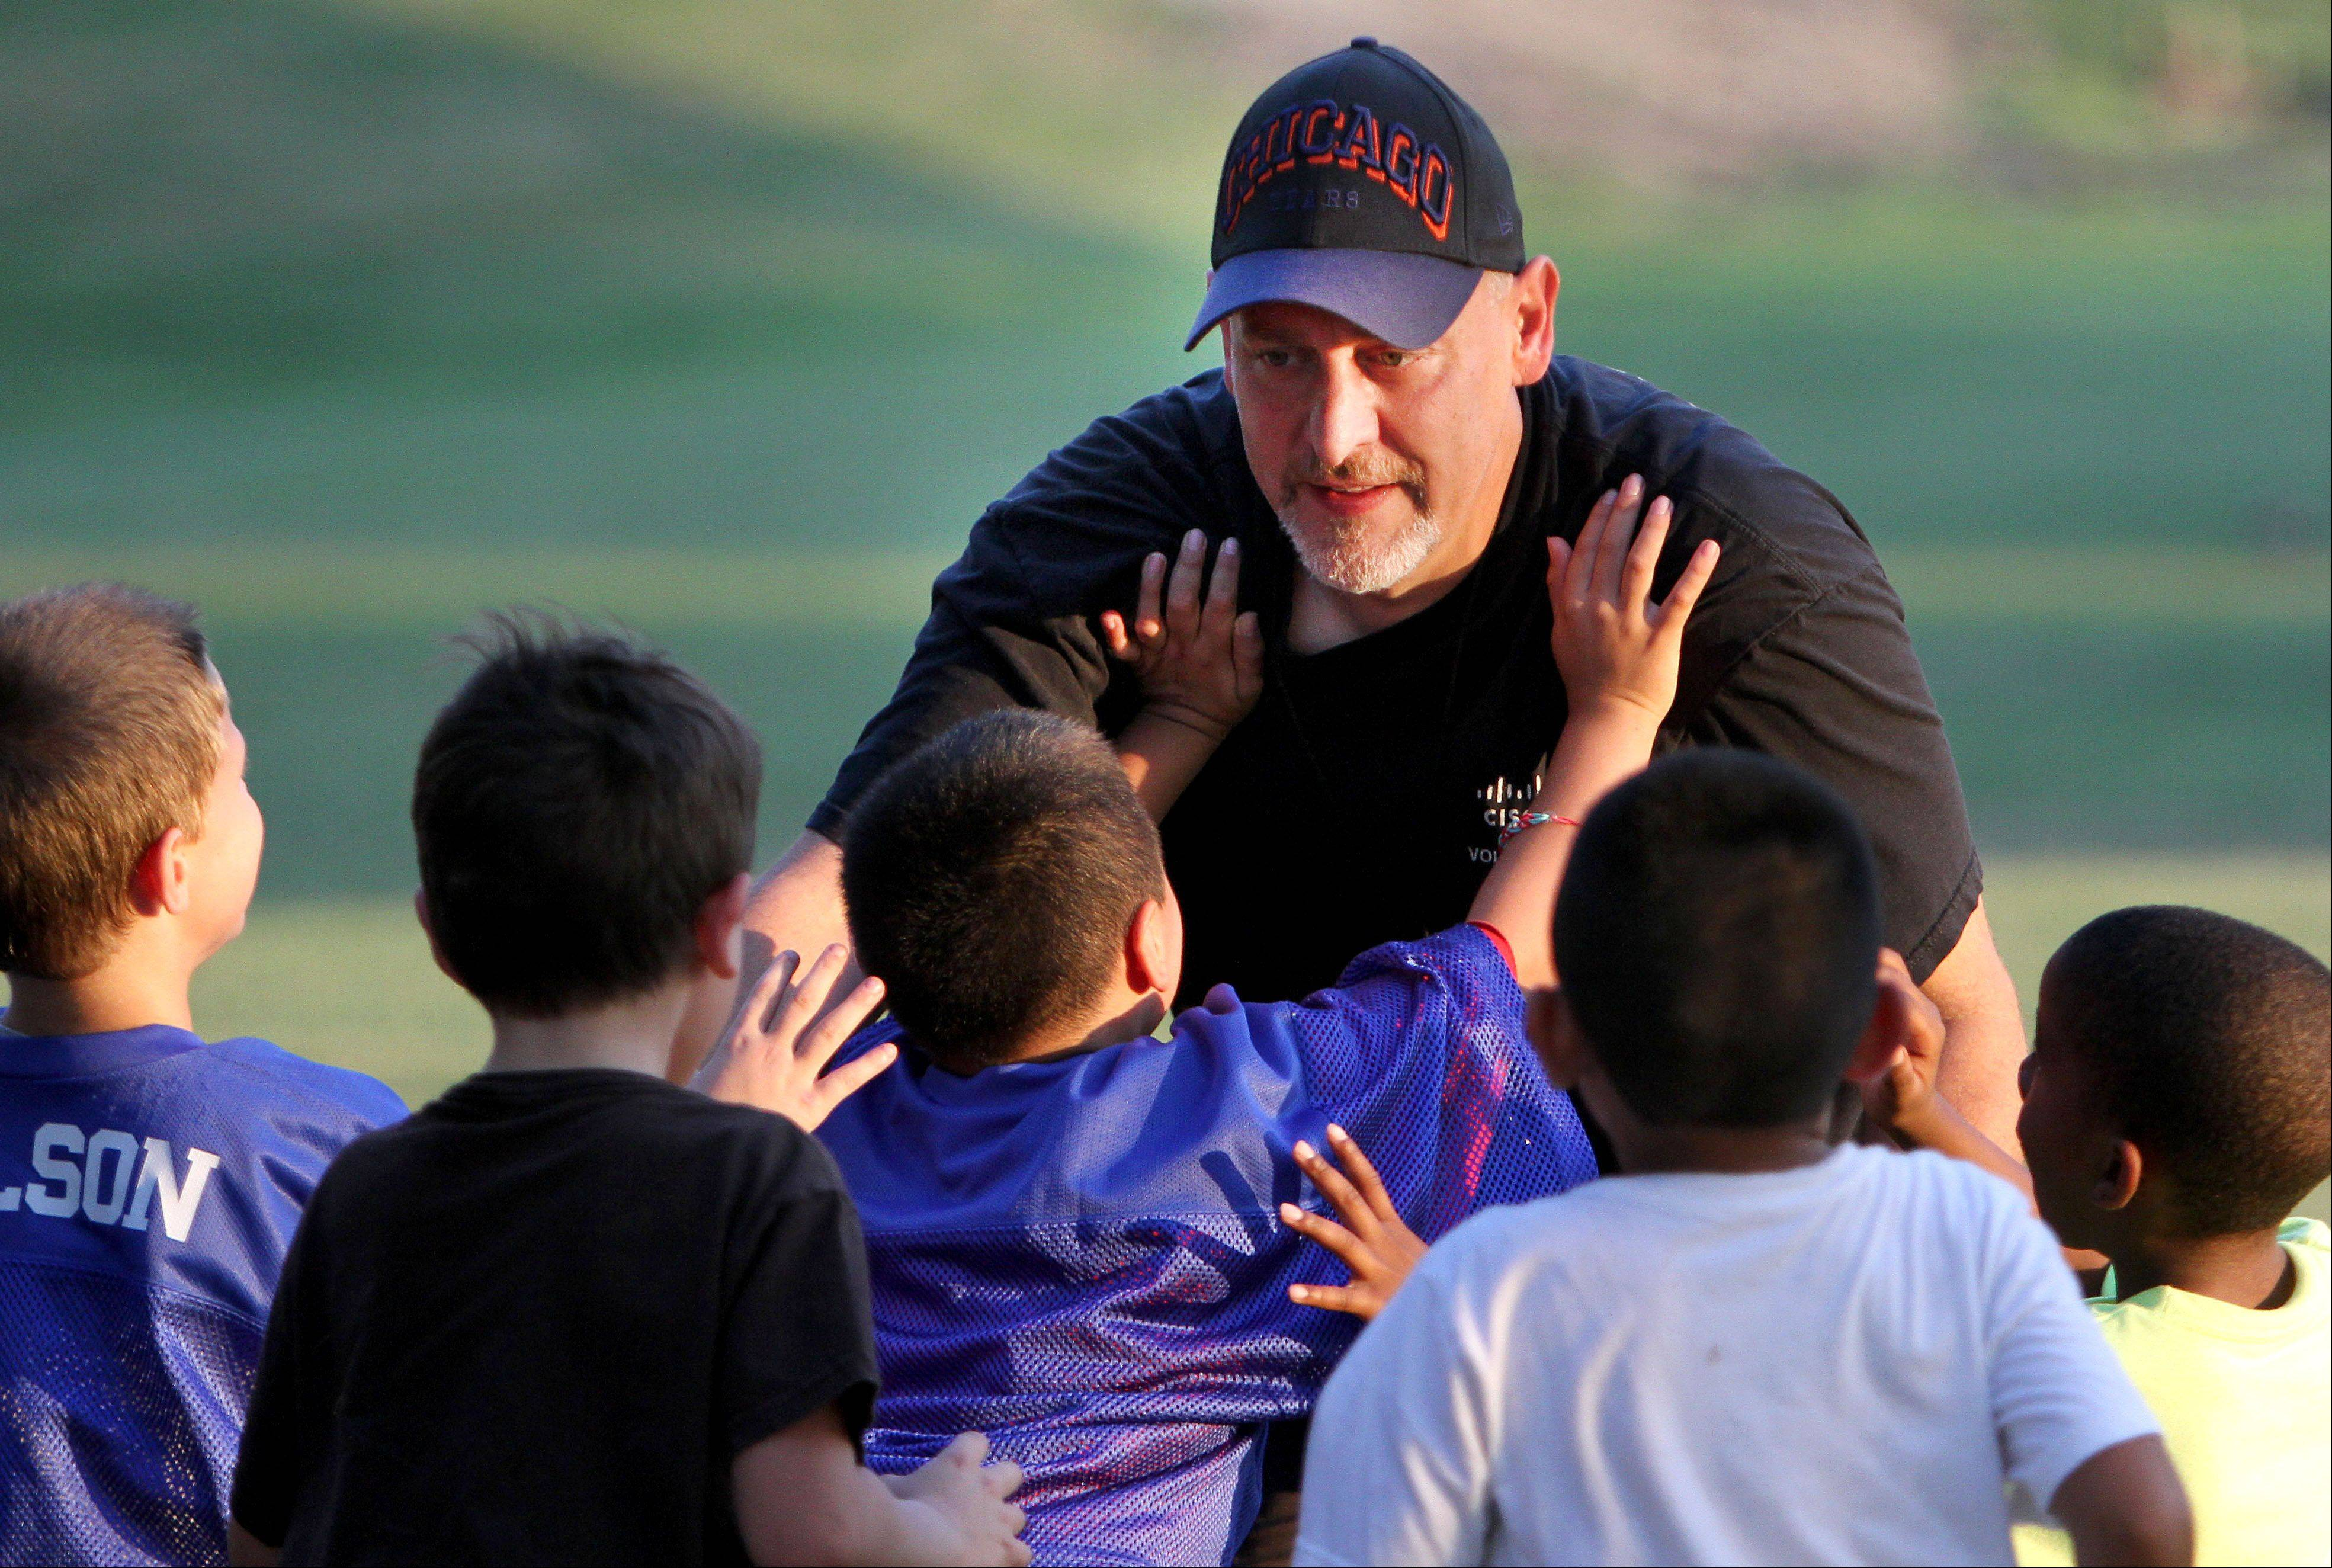 Paul Metcalf of Lake Zurich runs through drills with kids on the Ela Junior Bears youth football team at Knox Field in Lake Zurich. The team has opened to children who previously could not afford to join a youth sports team.